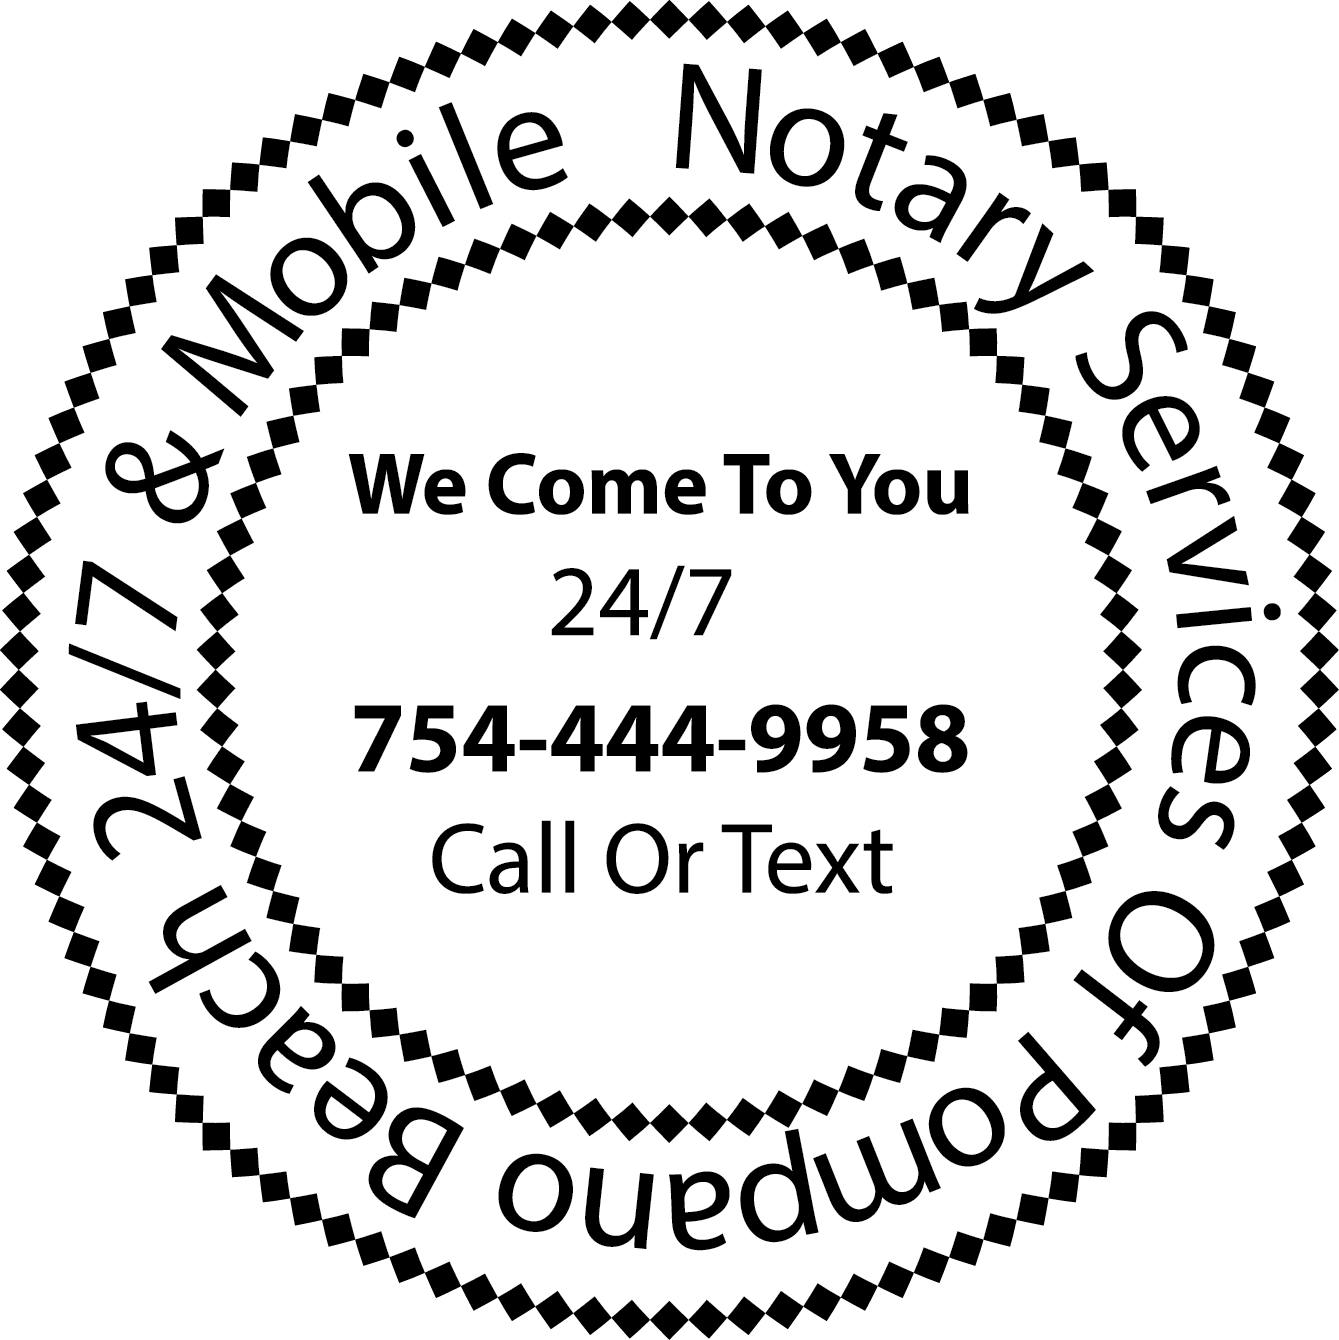 Mobile Notary / Signing Agents 24/7